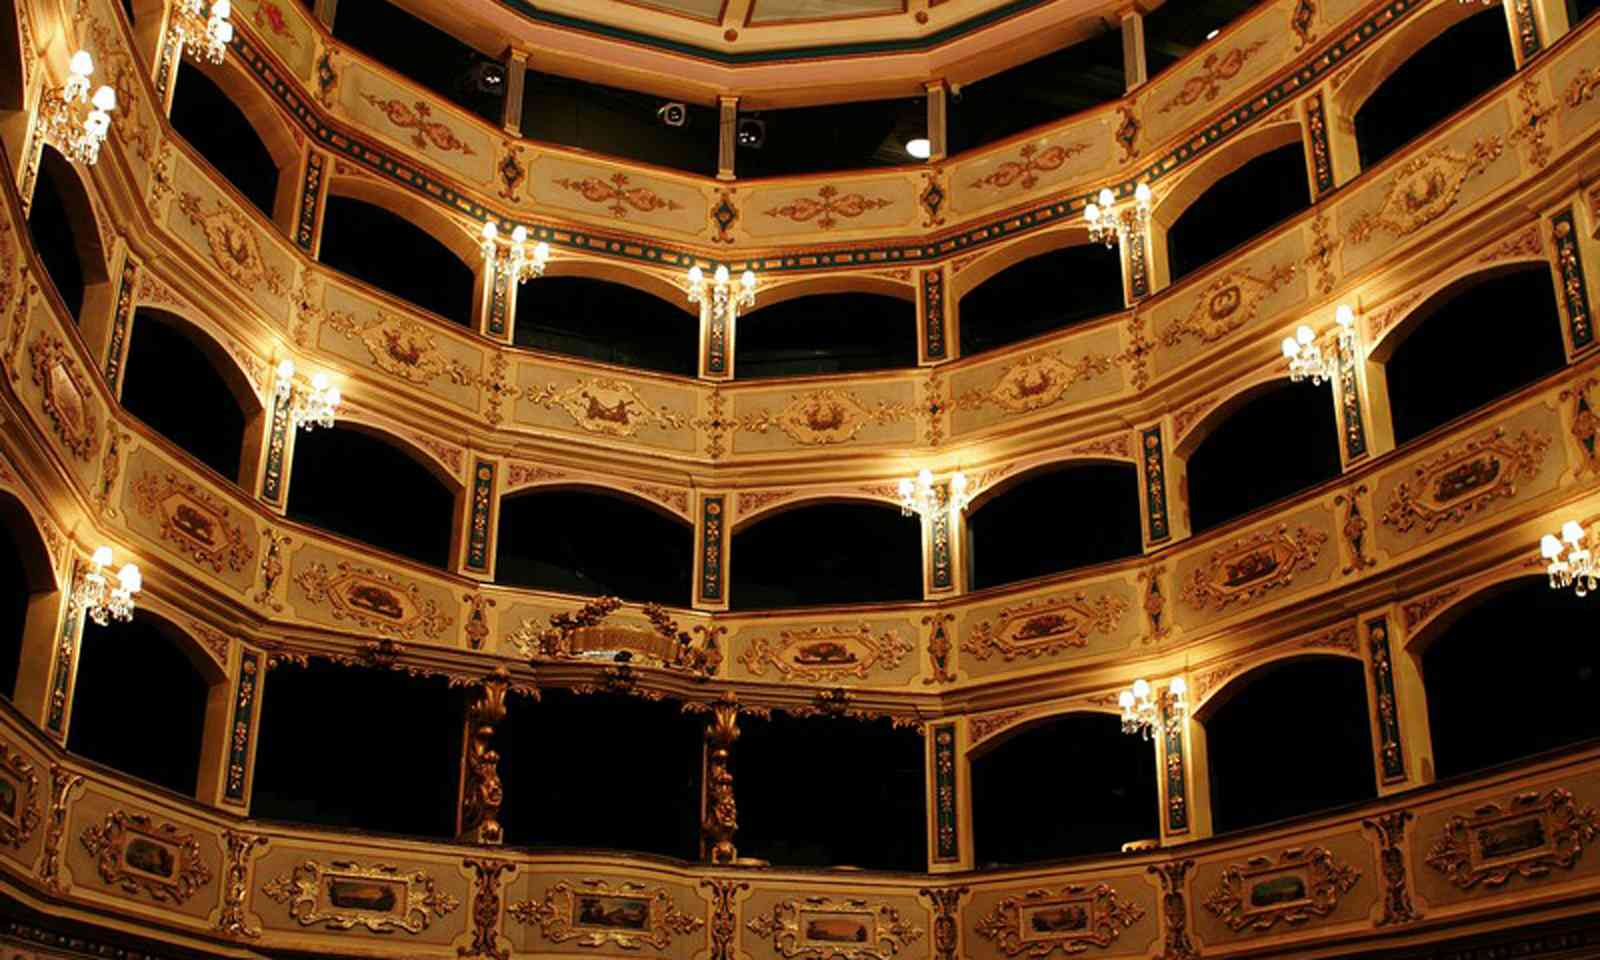 The boxes at Manoel Theatre (teatrumanoel.com.mt)